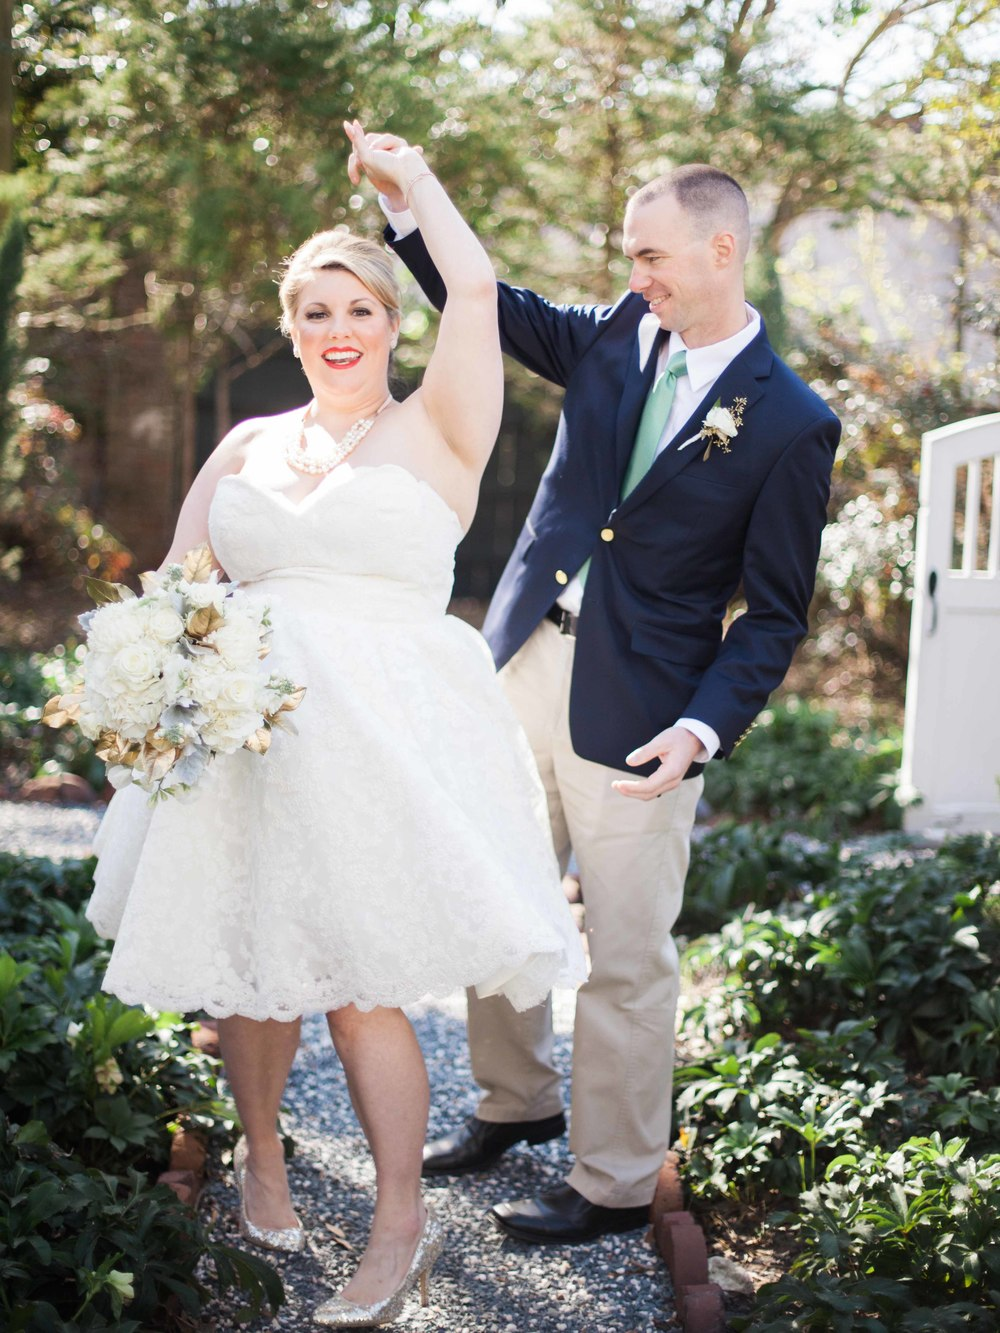 Coastal Lowcountry Wedding Inspiration at Burgwin Wright House by Wynona Benson Photography